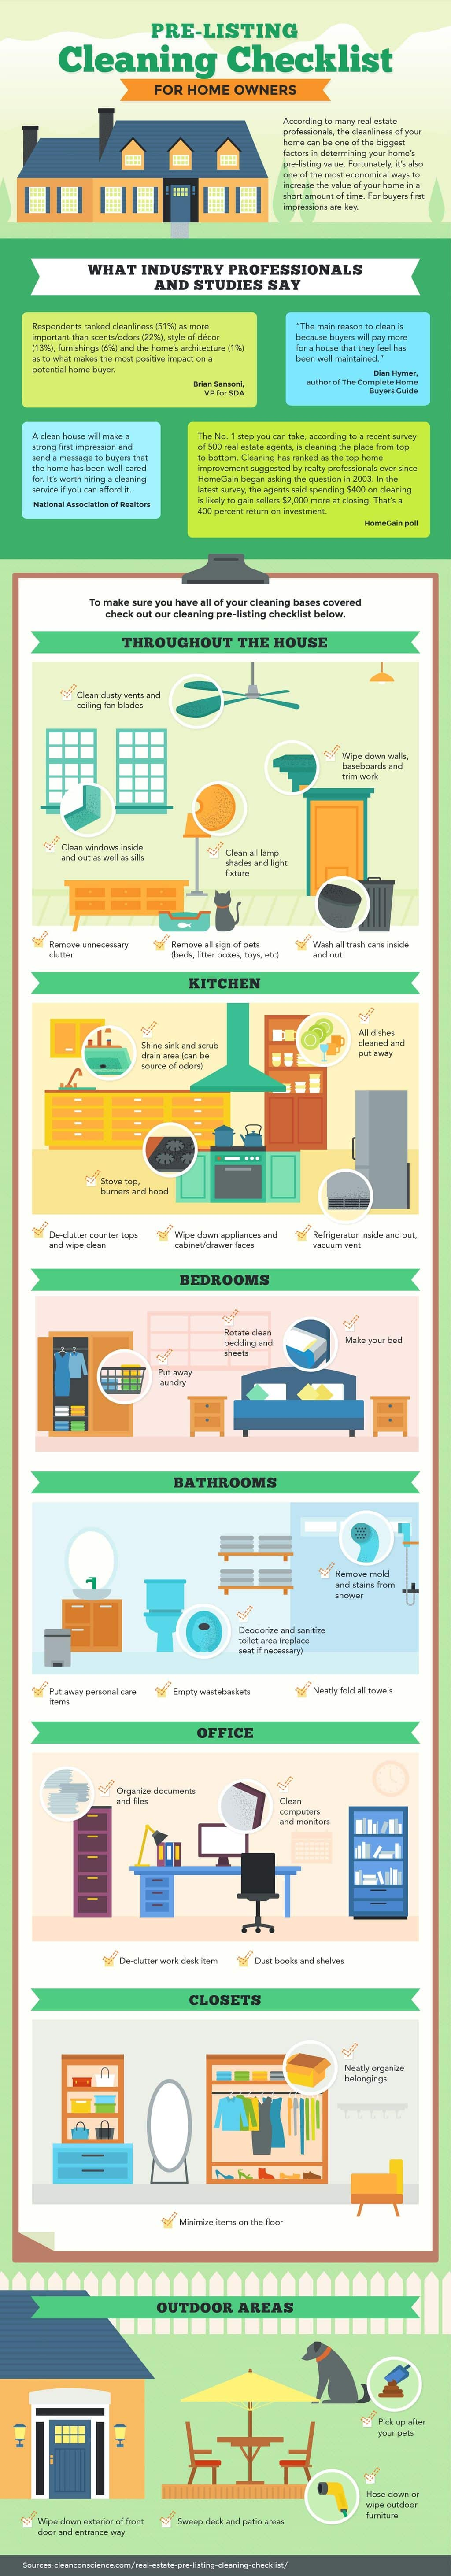 31 Great Cleaning Tips Pre-Sale Checklist For Your Home (Infographic)